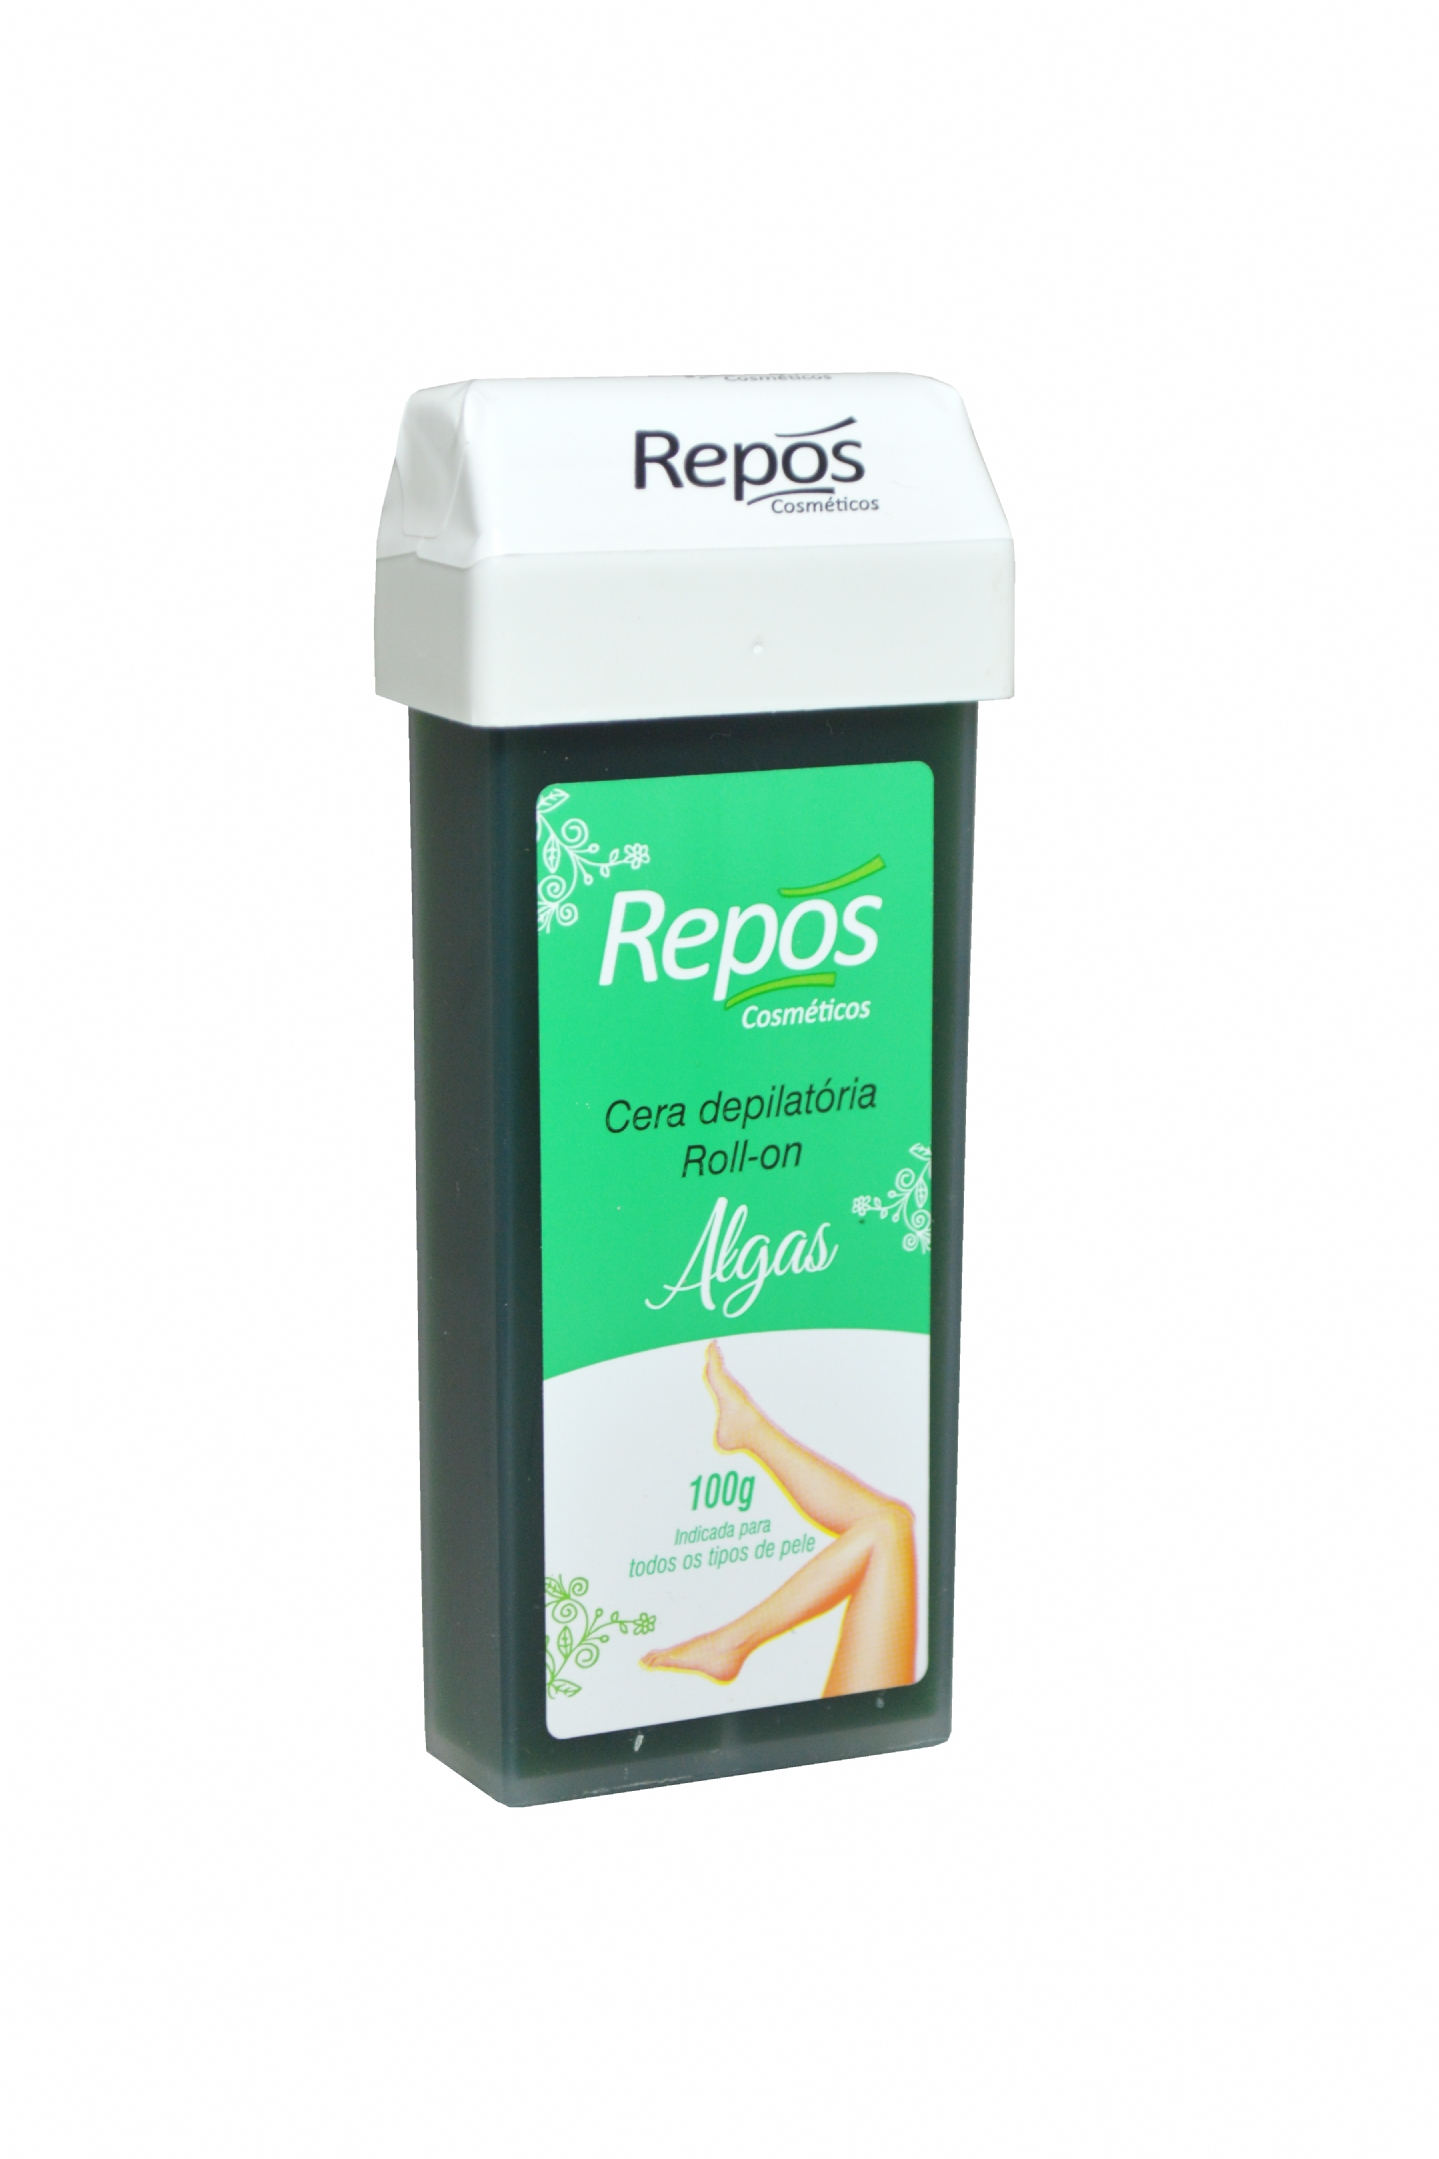 Cera Depilatória Repos Roll-On Algas 100g